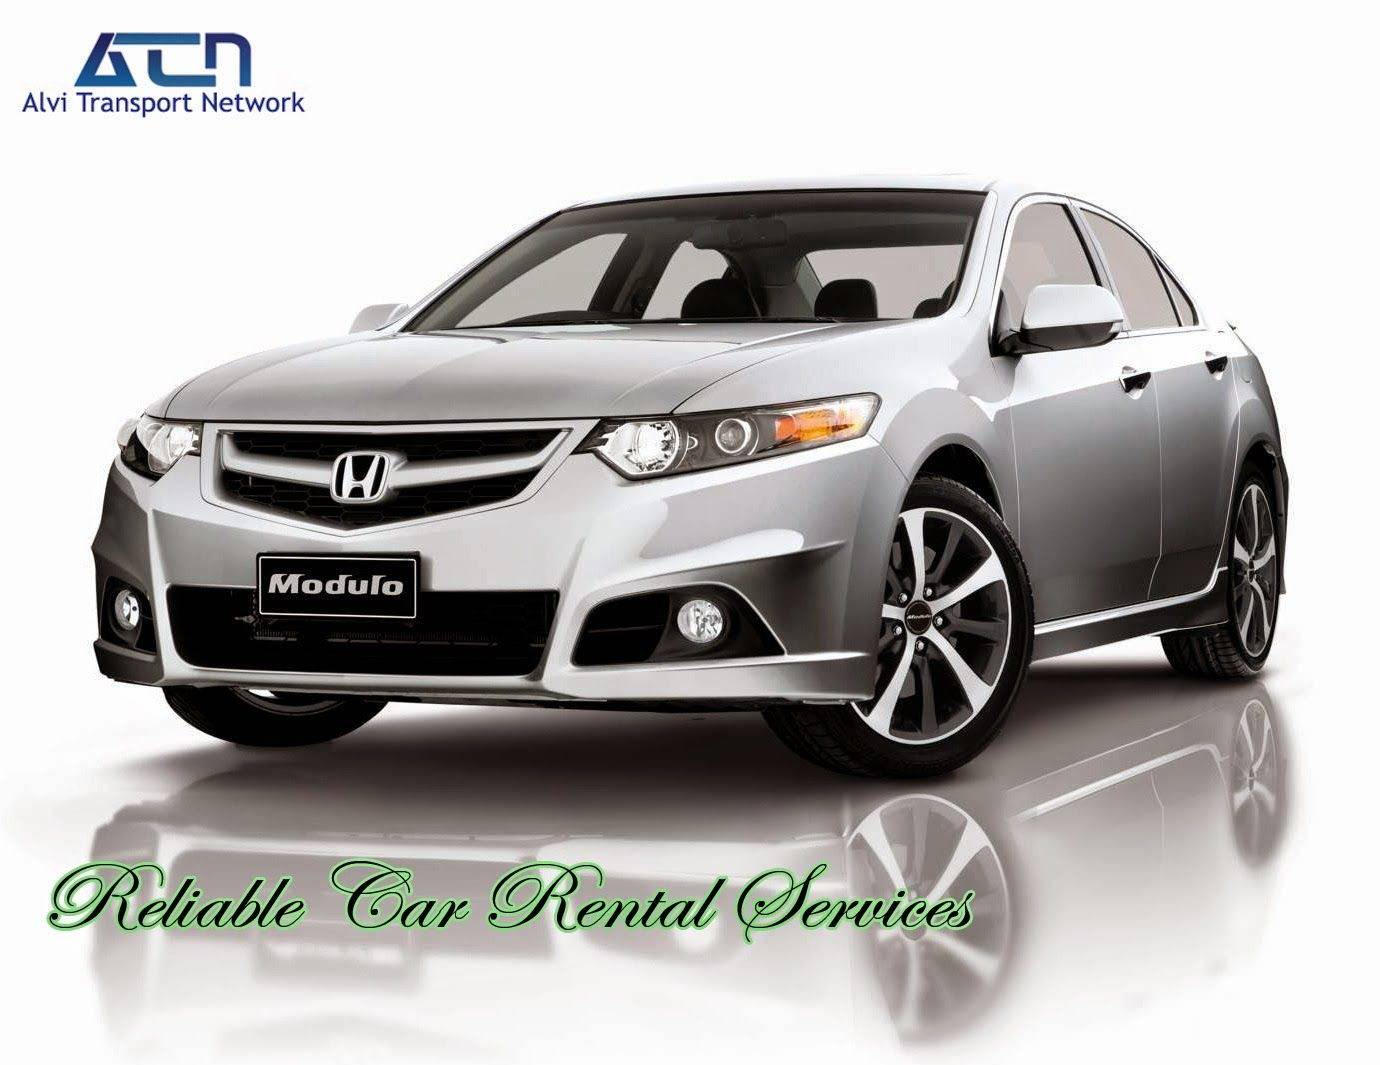 Renting Cars Is Not Just About Vacation Tours Anymore Best Rent A Car Services In Pakistan Honda Accord Honda Car Rental Service